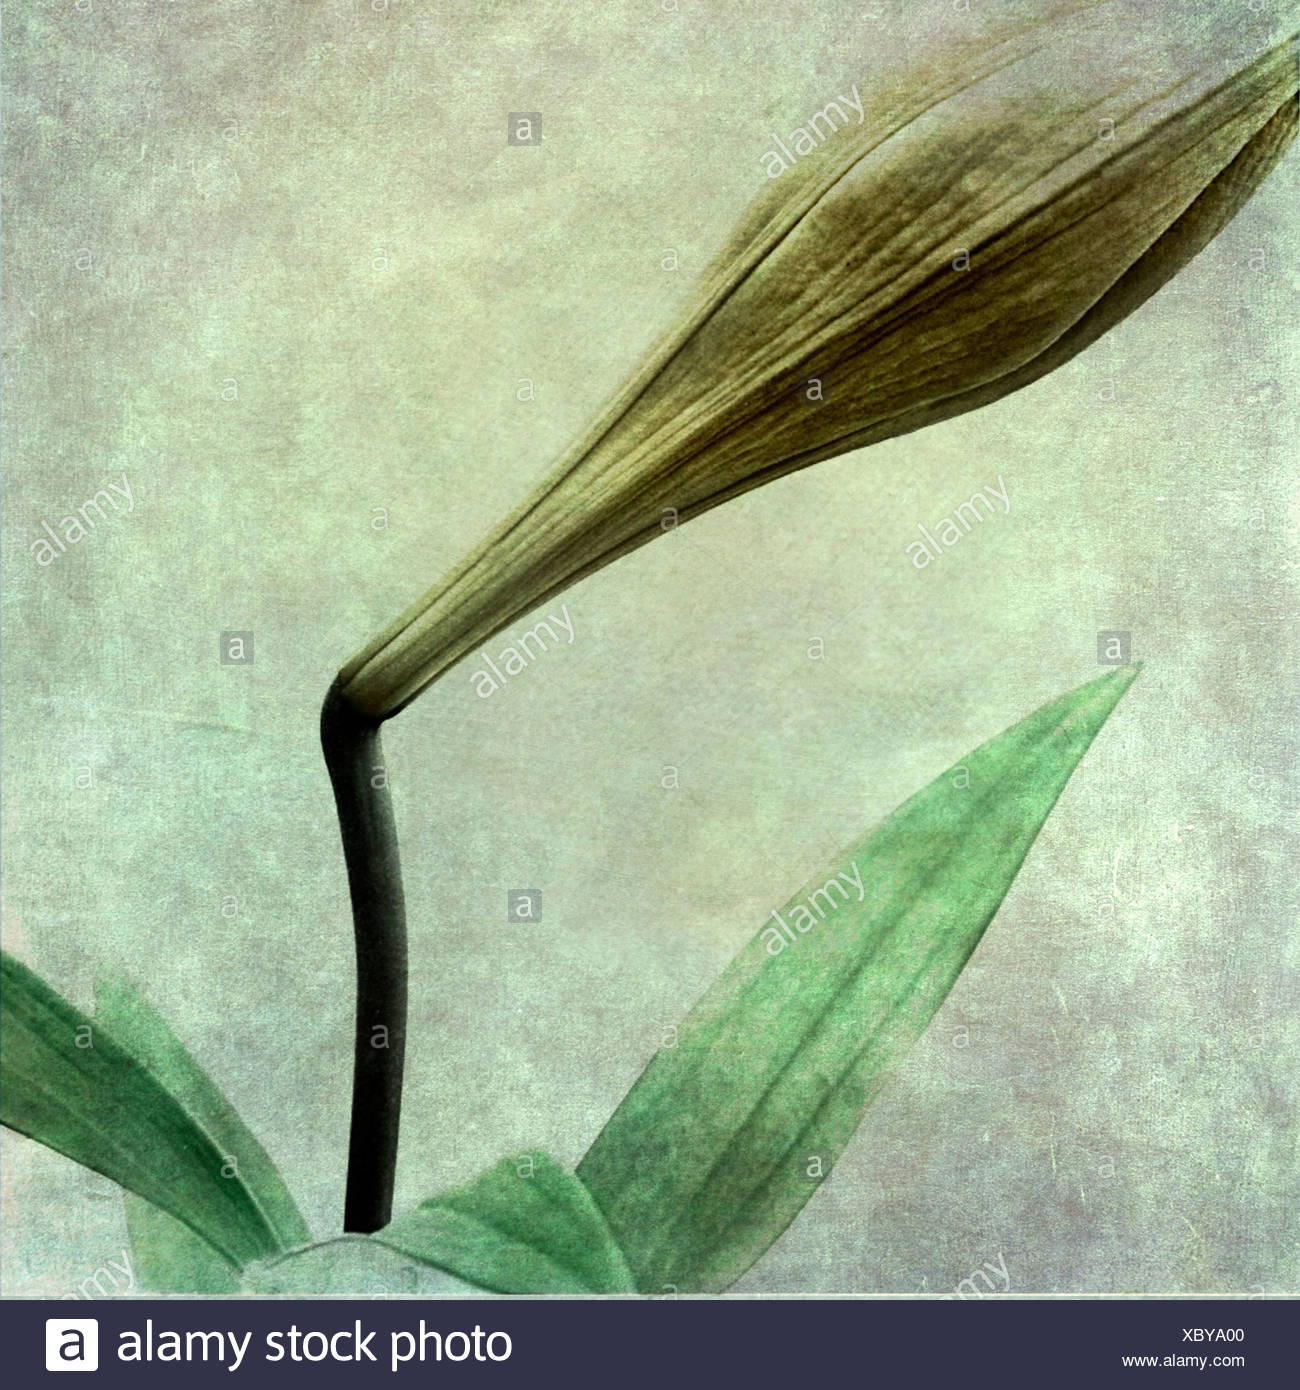 textured image of arum lilly - Stock Image